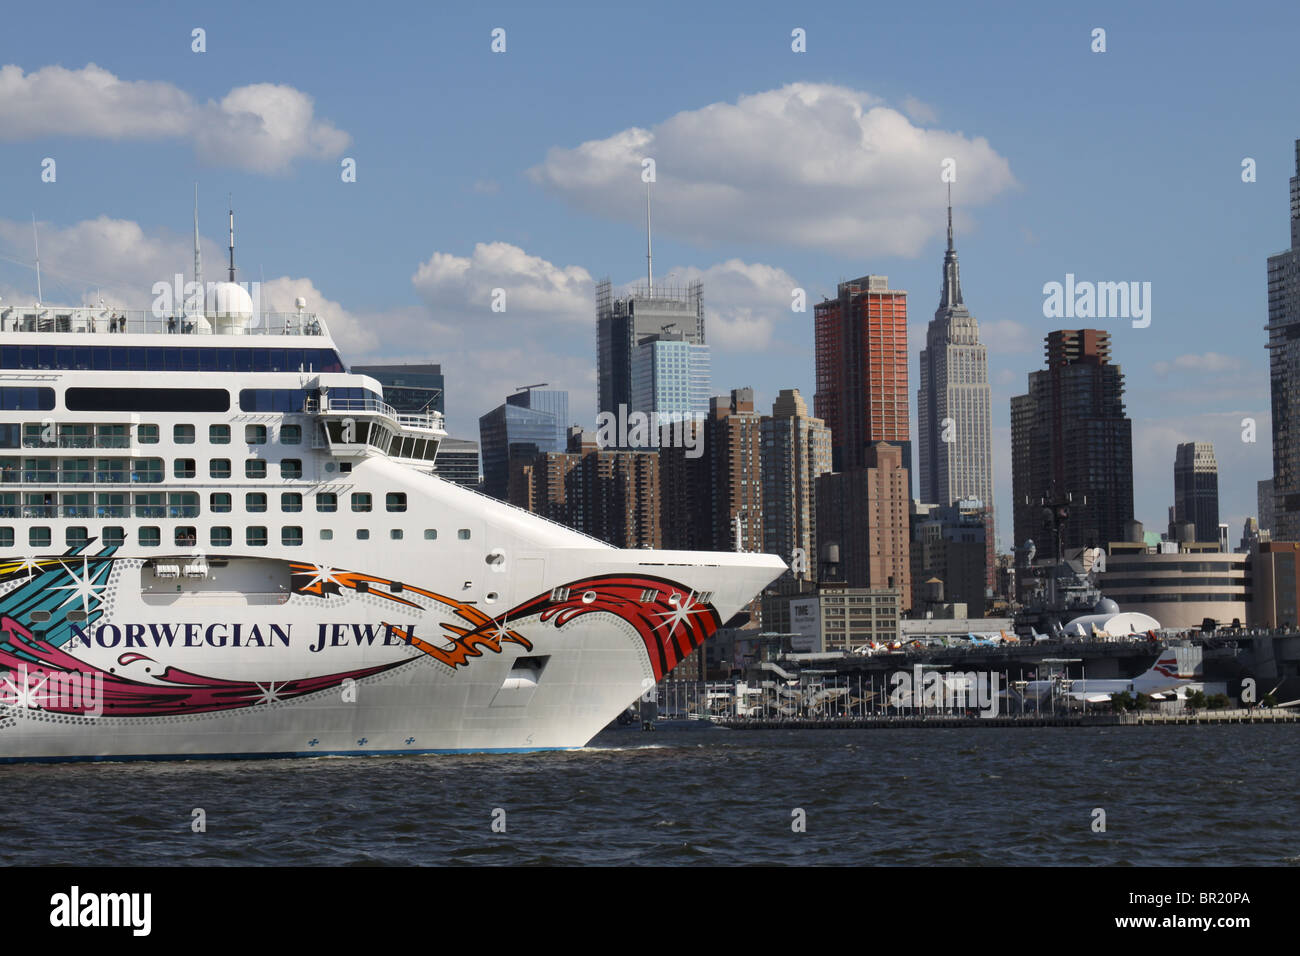 New York City- September 4, 2010-Nowegian Jewel cruise ship approching the Empire State Building on the Hudson River. - Stock Image